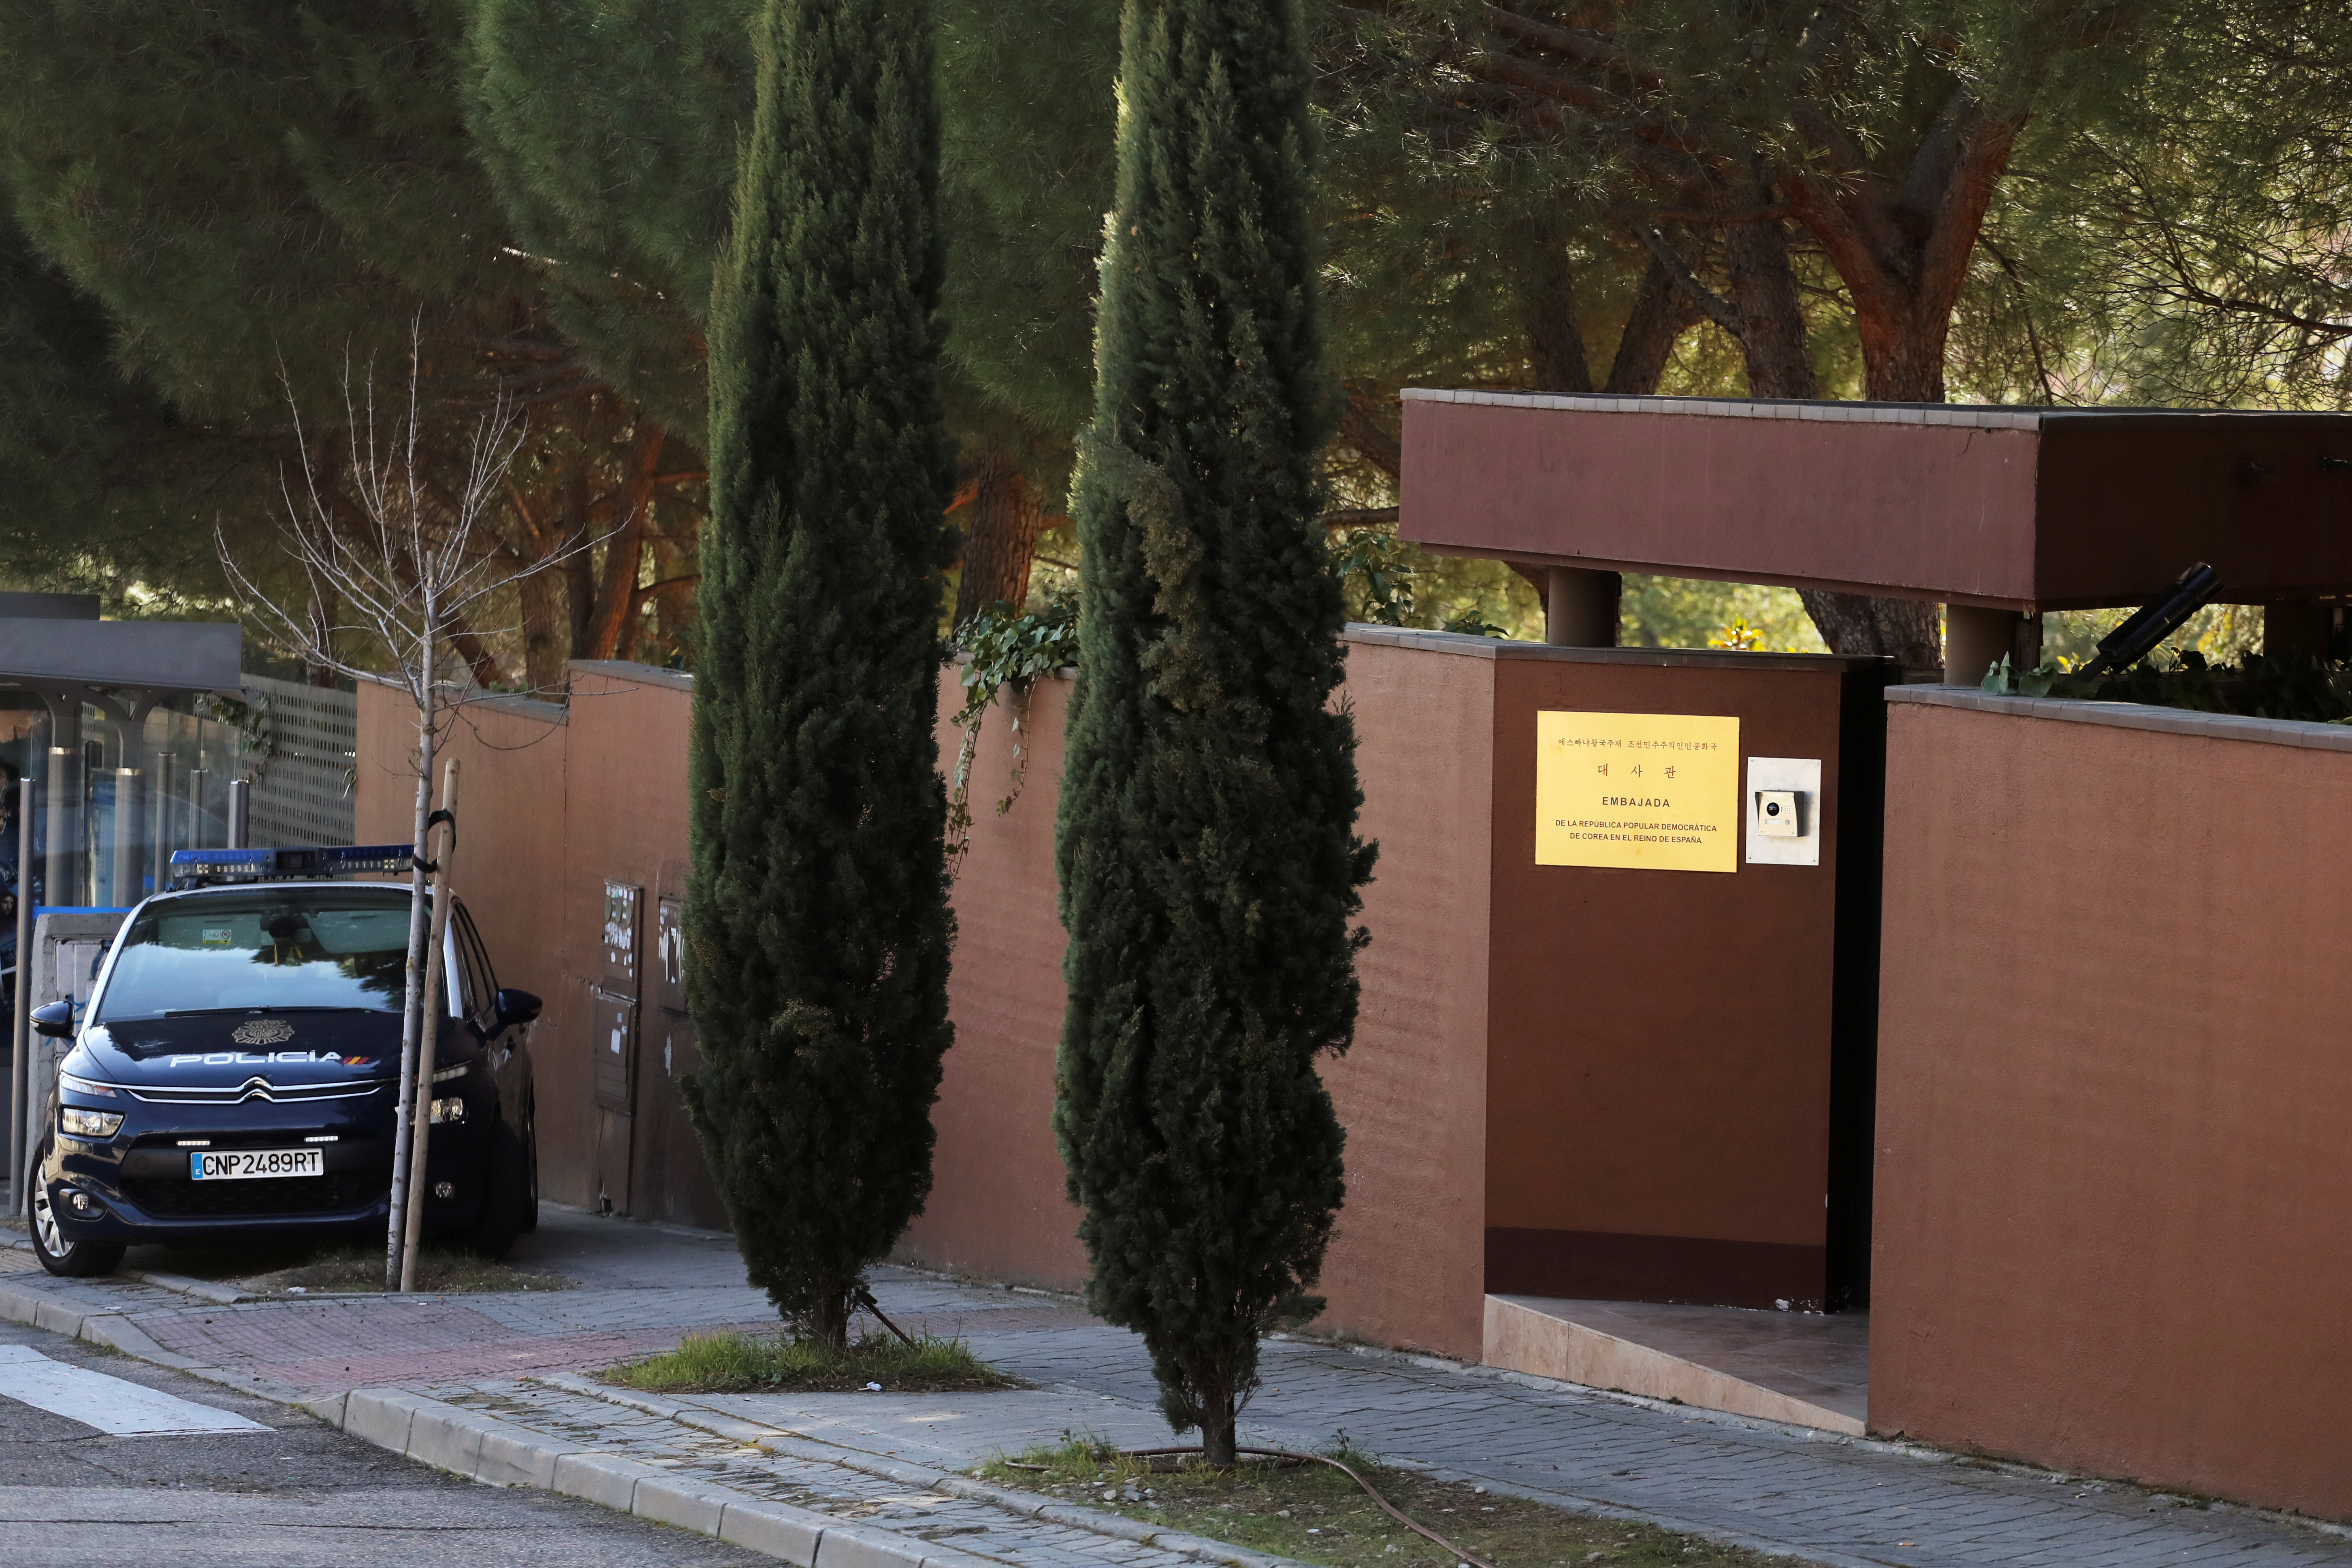 A Spanish National Police car is seen outside the North Korea's embassy in Madrid, Spain, Feb. 28, 2019.